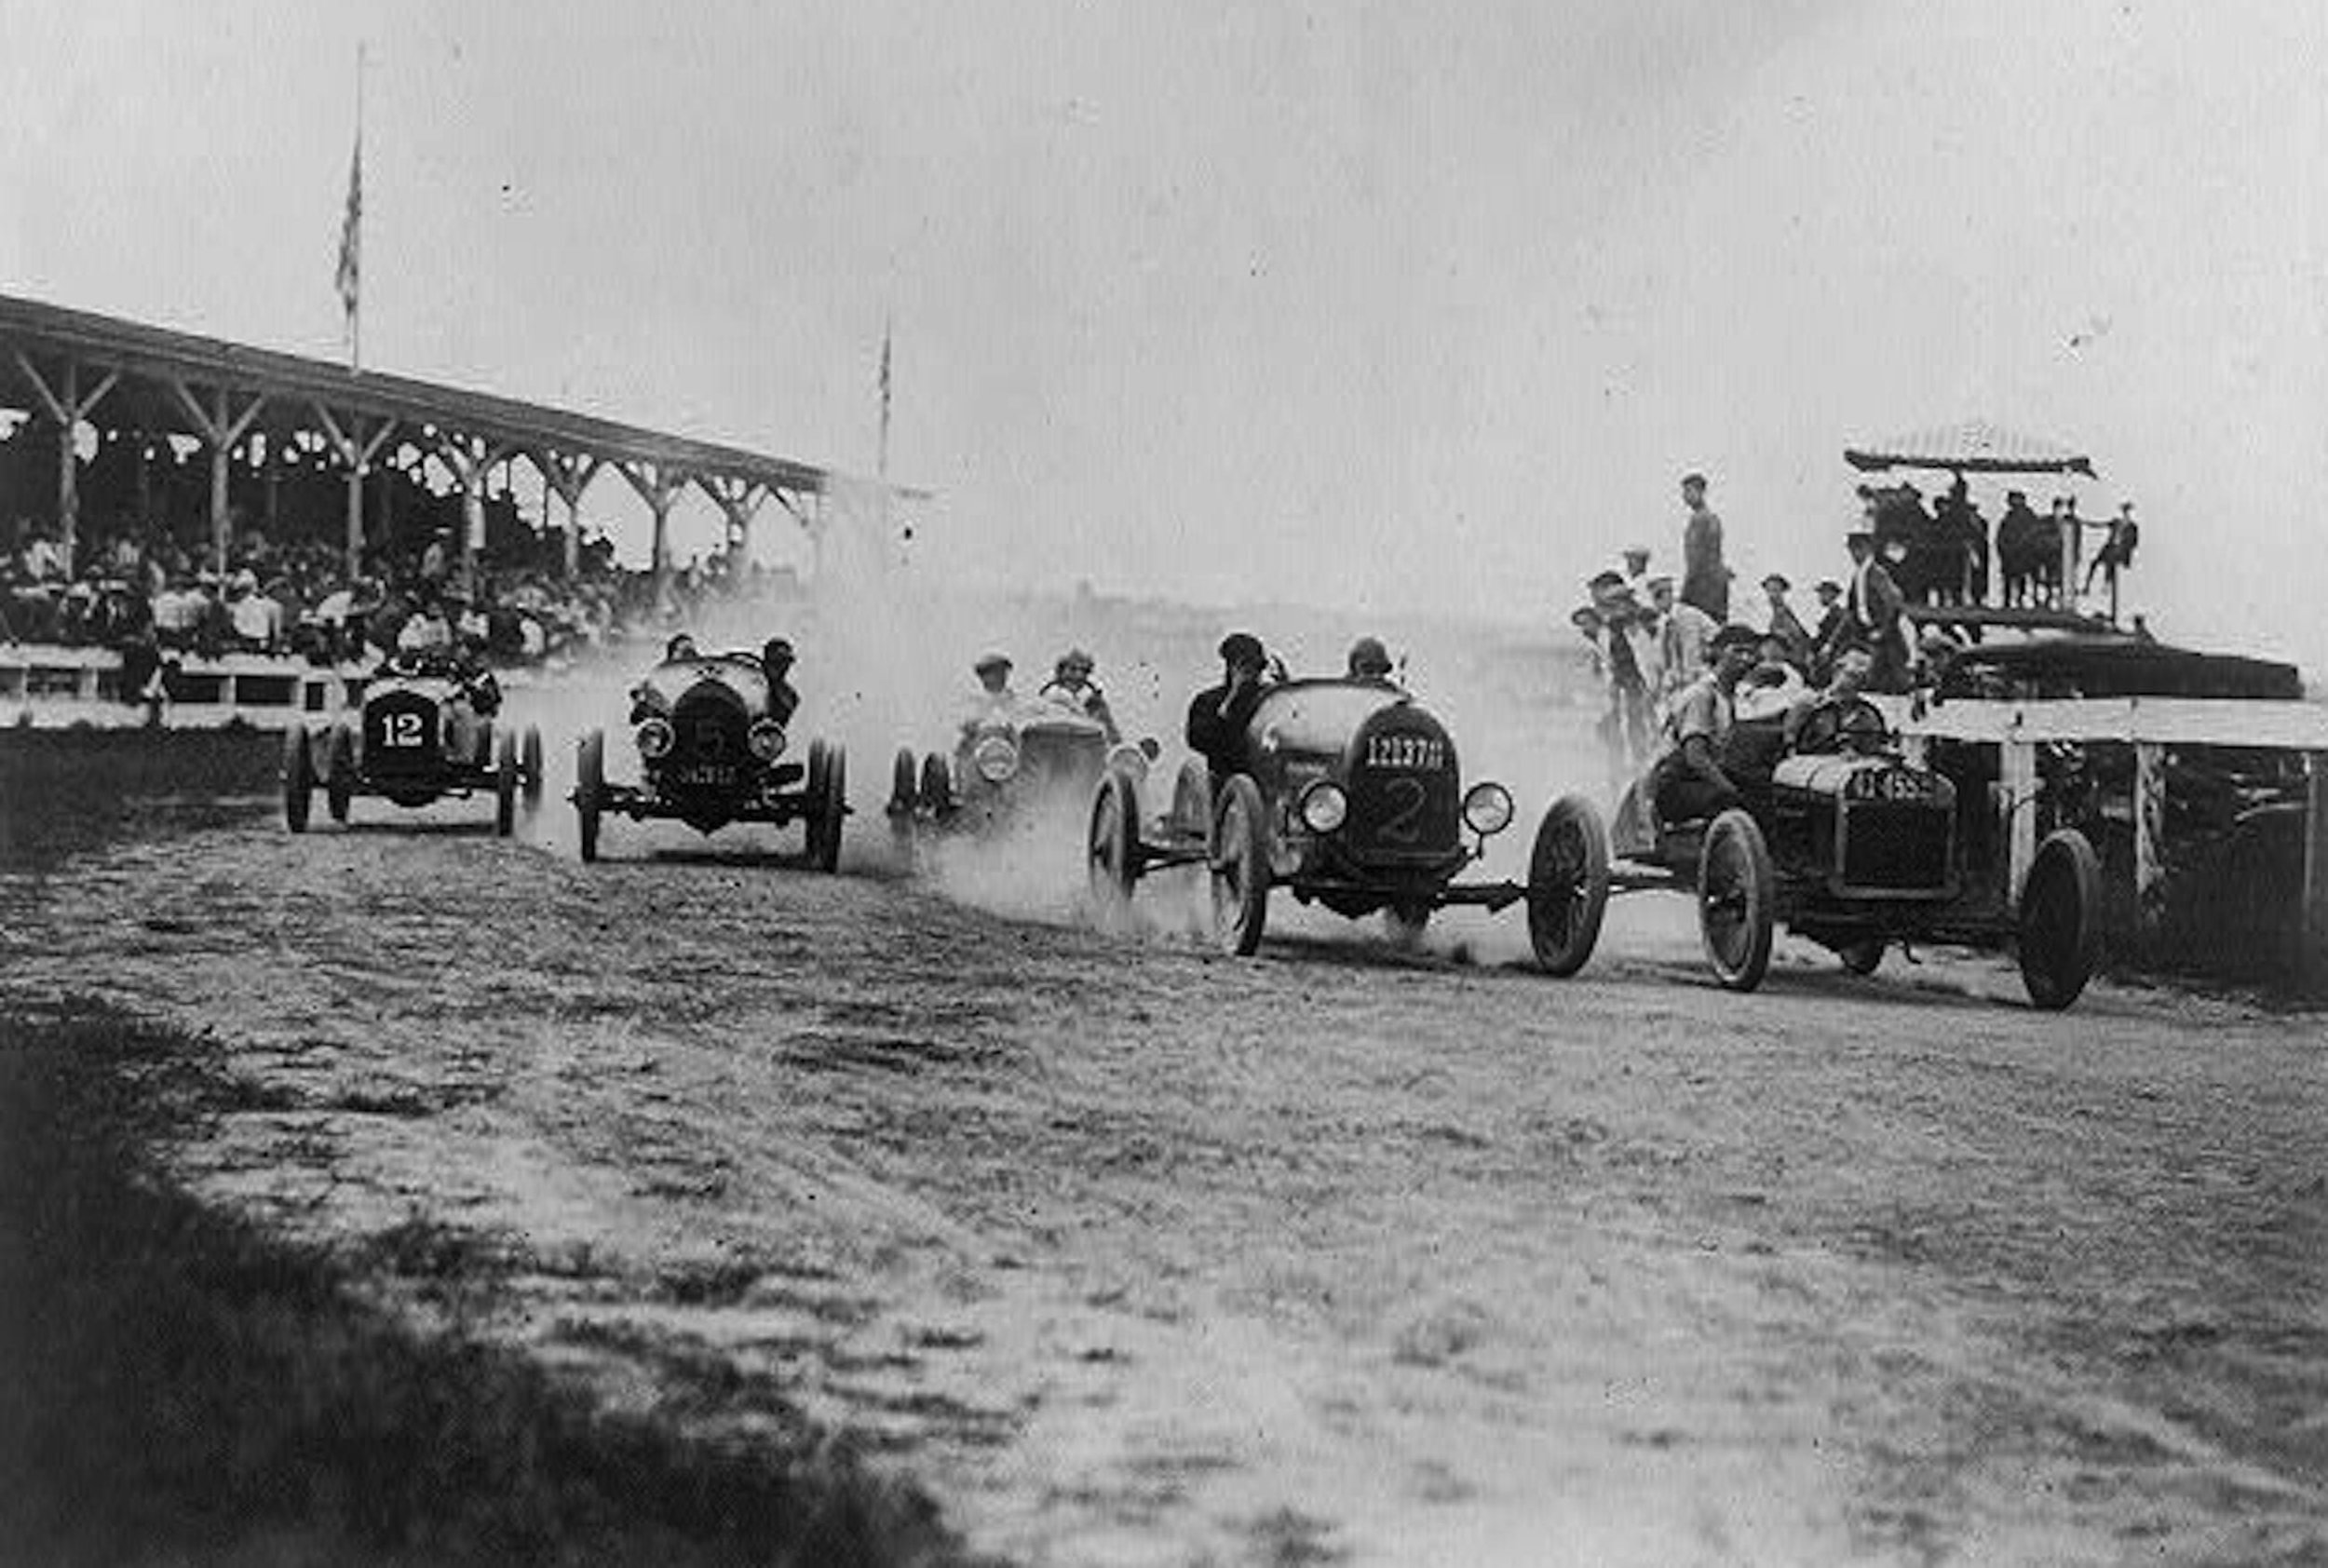 Most Delaware sports fans had never seen anything as exciting as early auto racing on the state's dirt tracks.